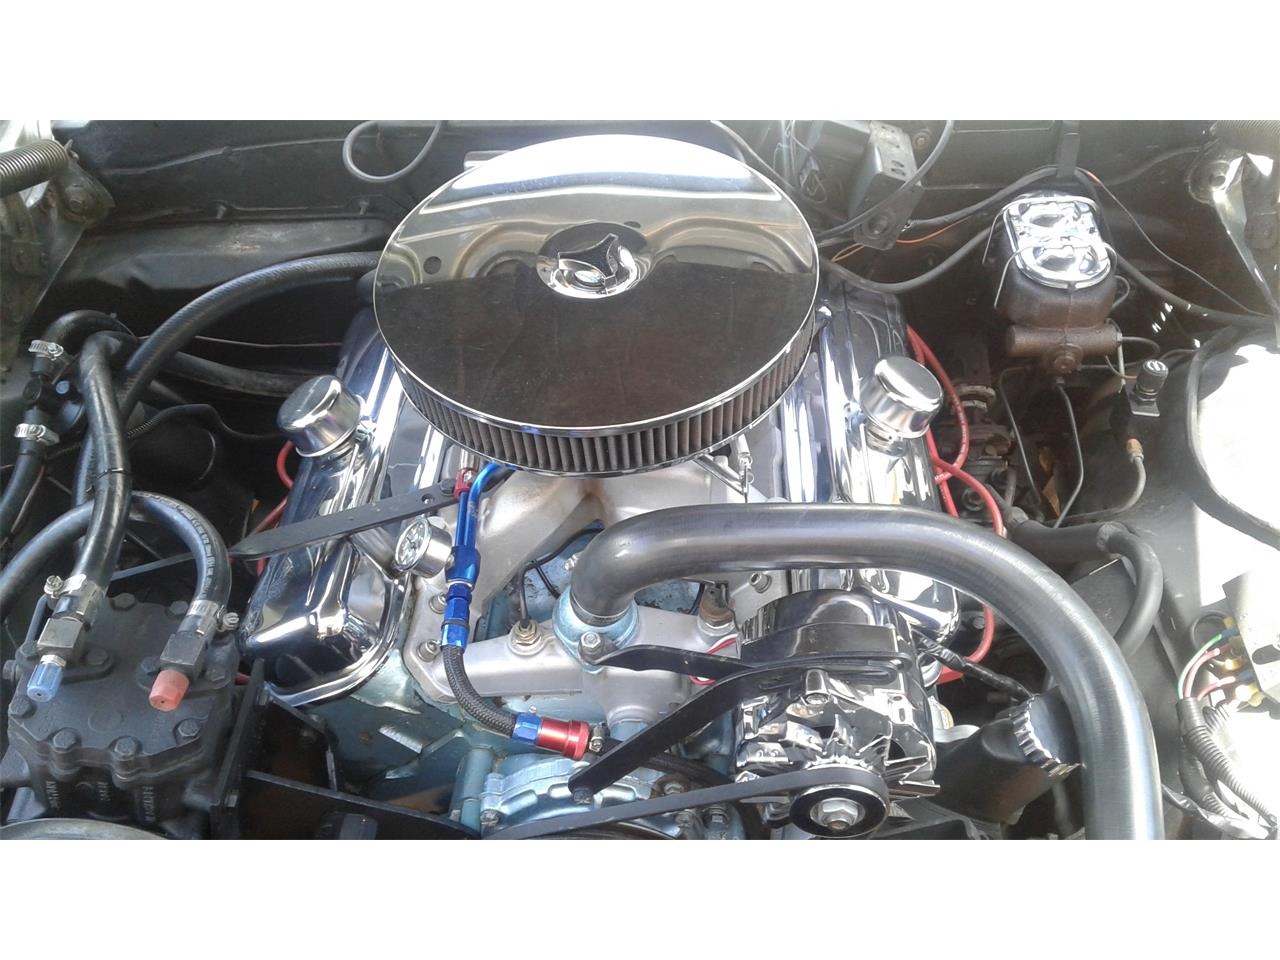 Large Picture of '68 Pontiac Firebird located in Florida - $27,000.00 Offered by a Private Seller - QPZ5